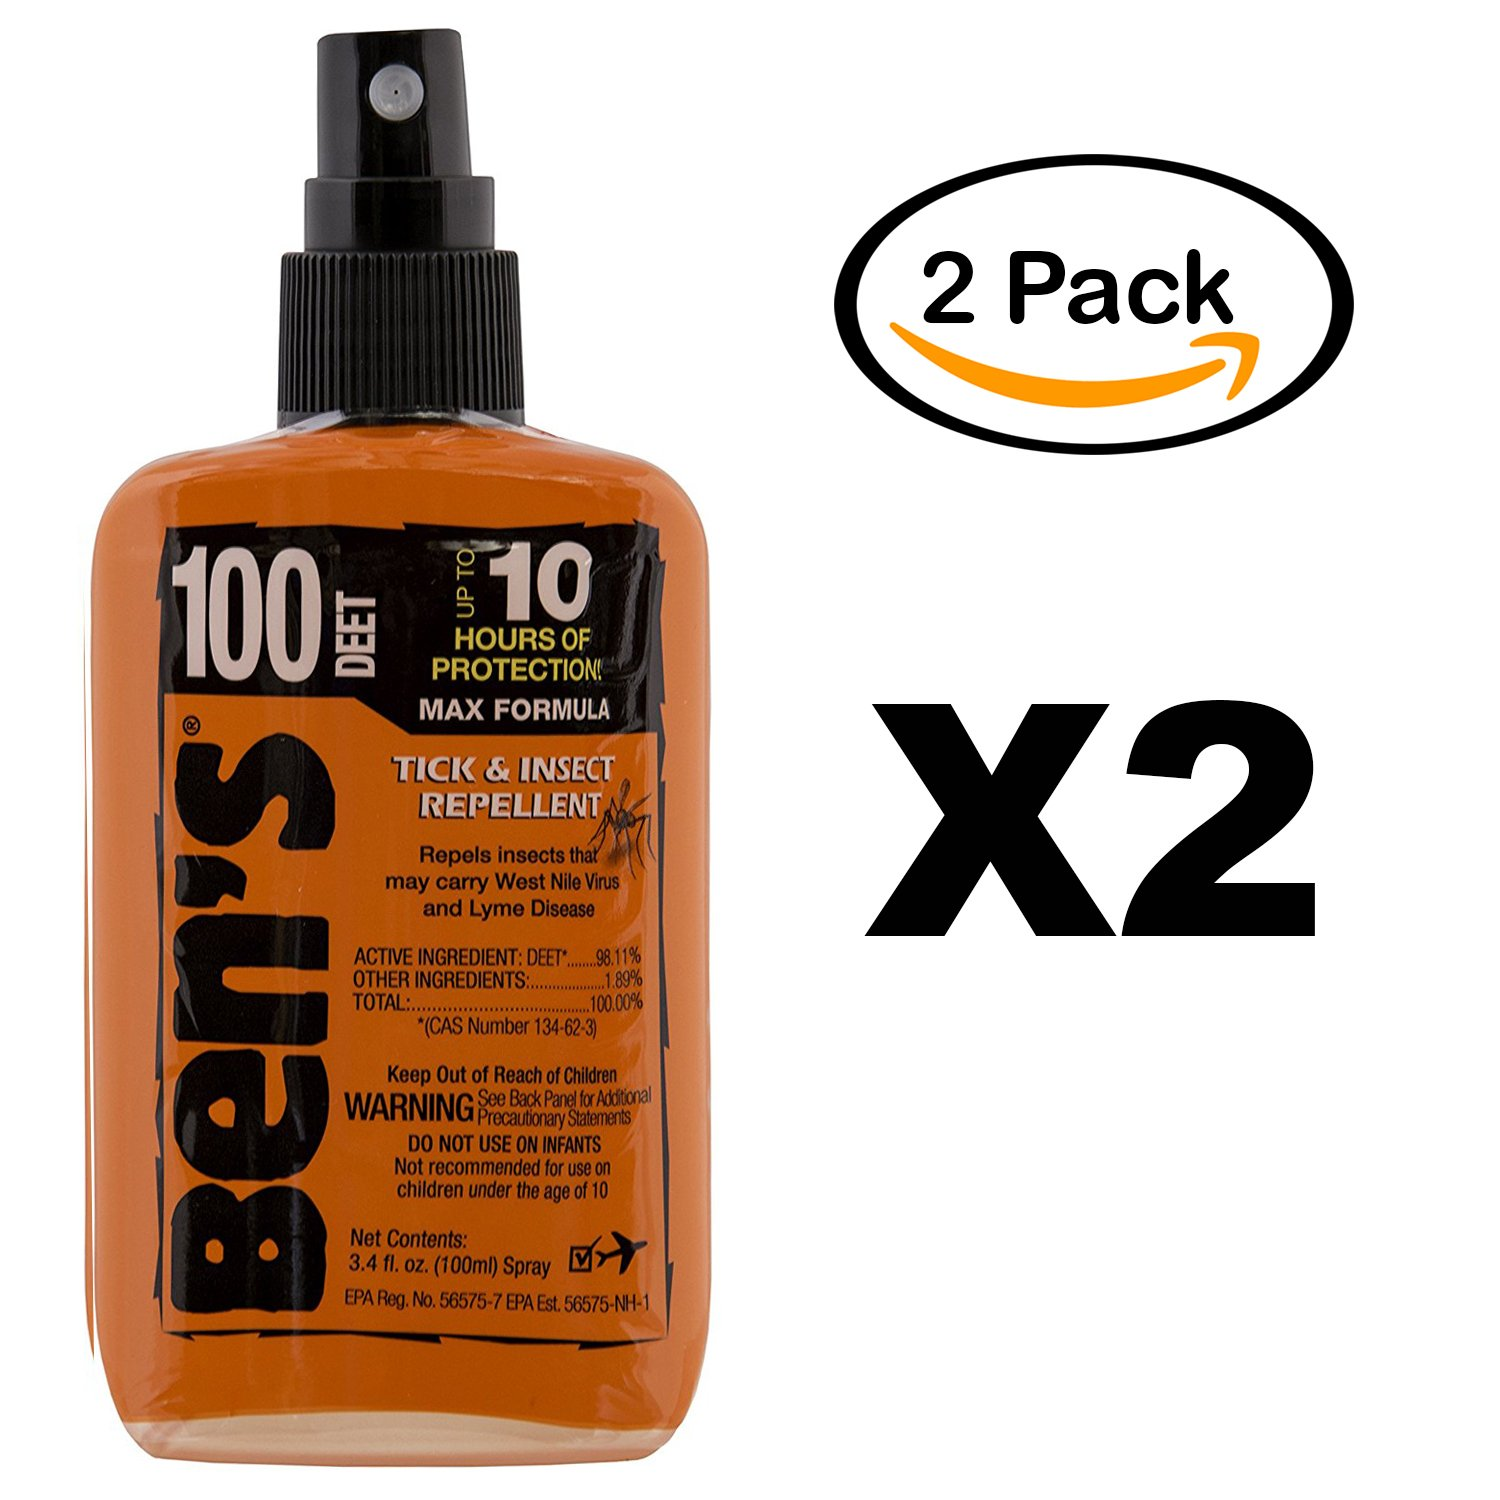 Ben's 100% Deet Tick Mosquito Insect & Bug Repellent 3.4 Ounce Oz Pump Spray (2 Pack)